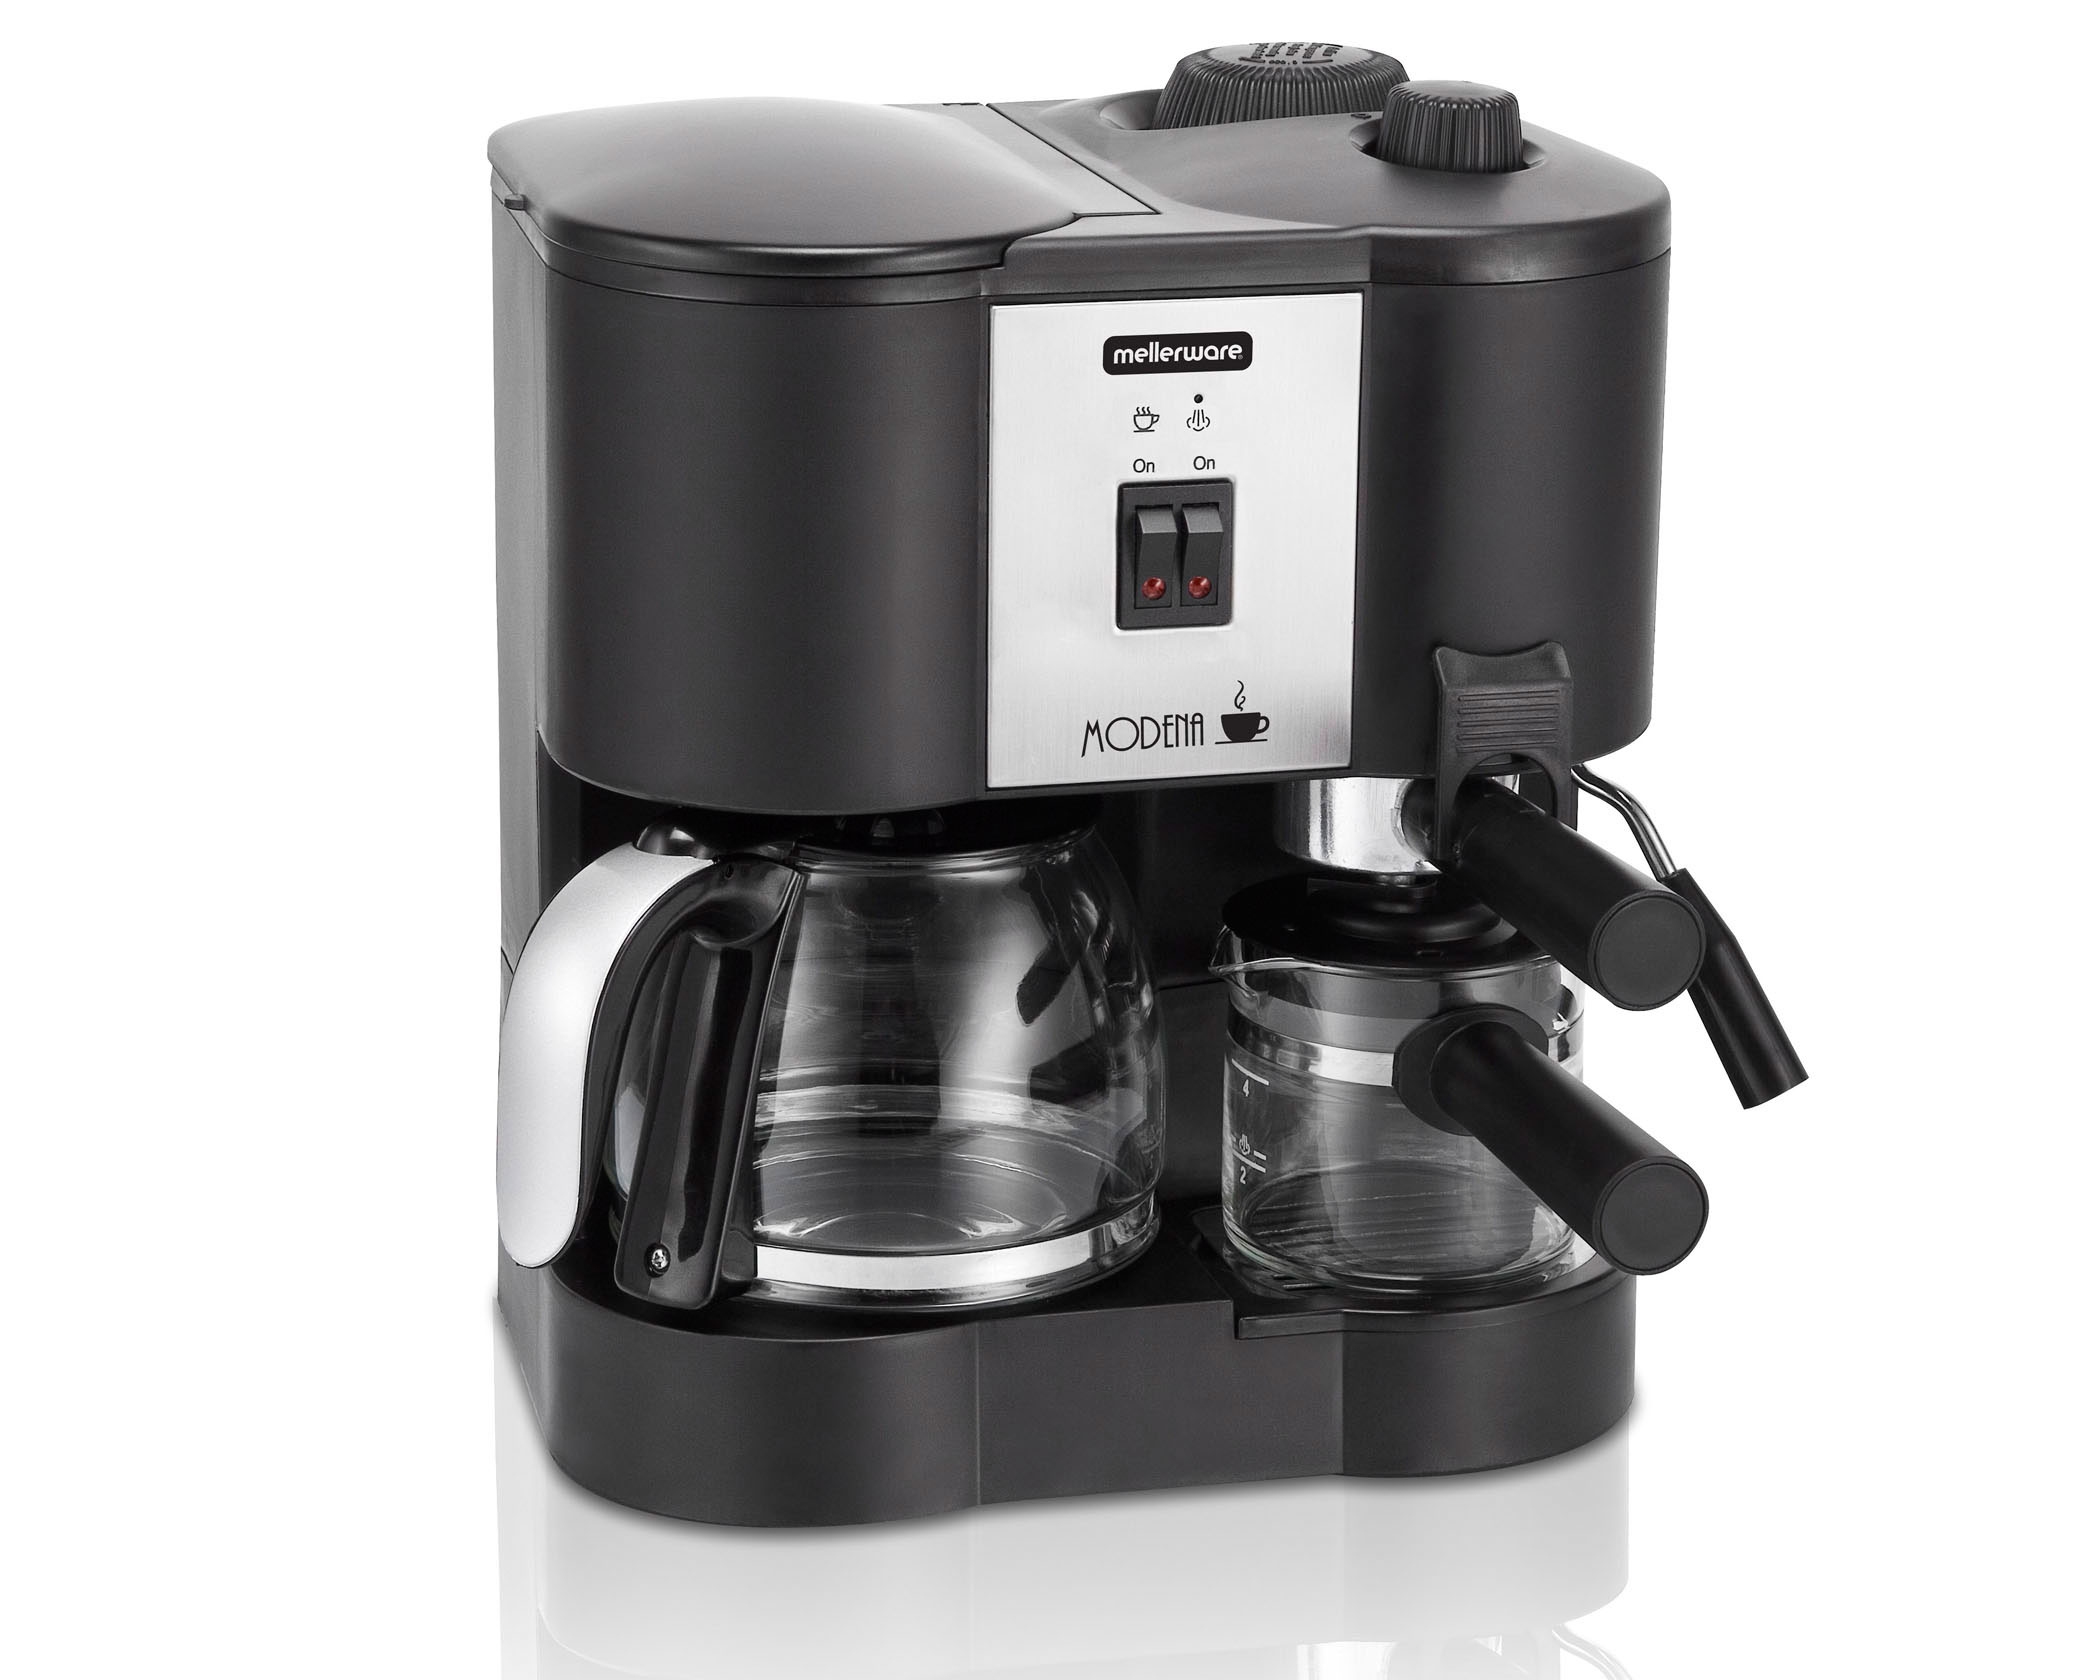 Modena Coffee Machine Mellerware 29003 Mellerware